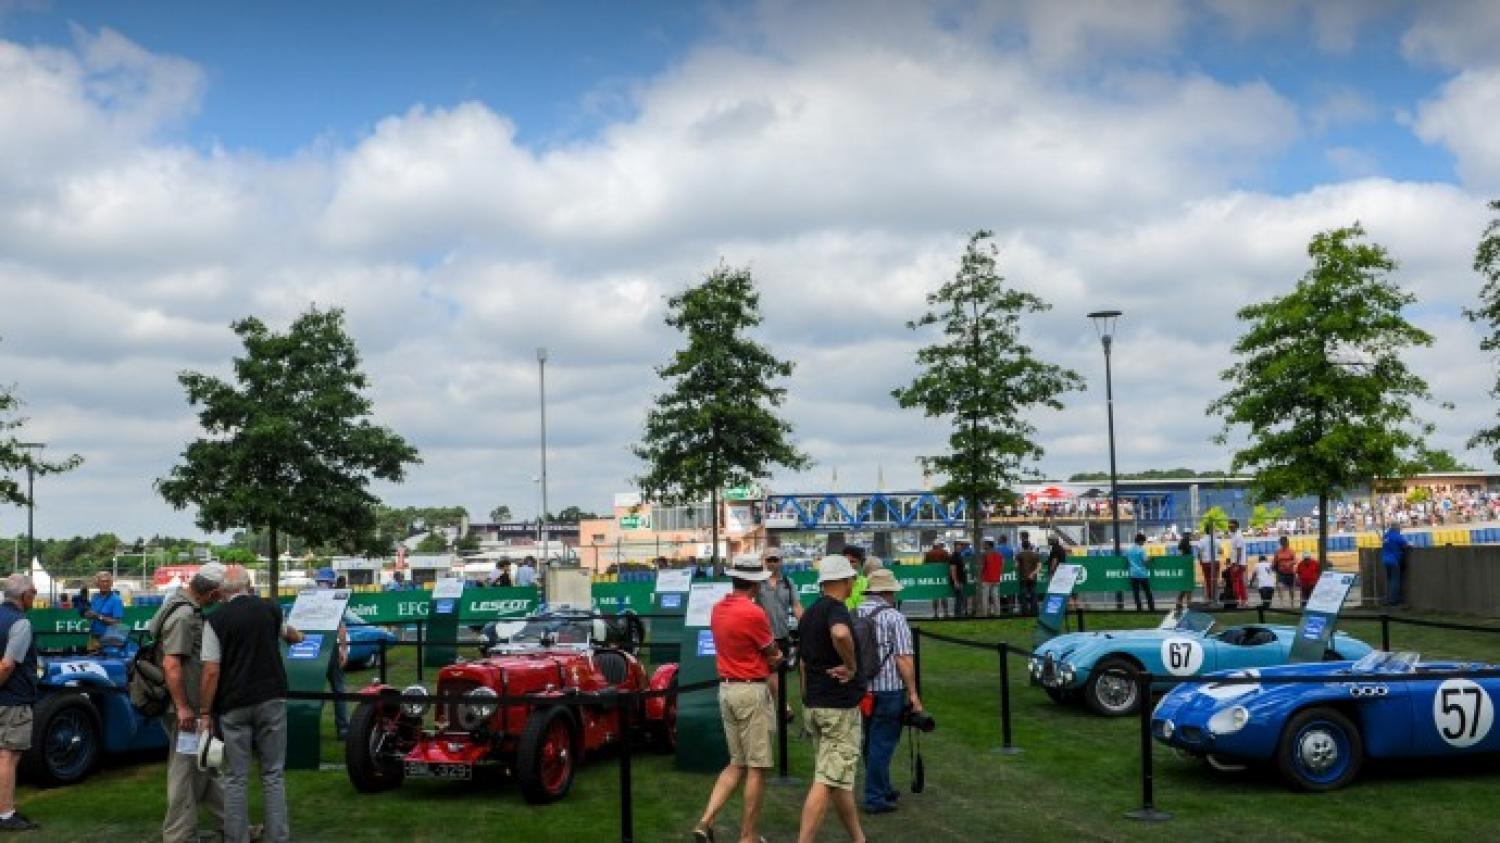 Le Mans Classic - The Le Mans Heritage Club pays tribute to 24 Hours of Le Mans cars